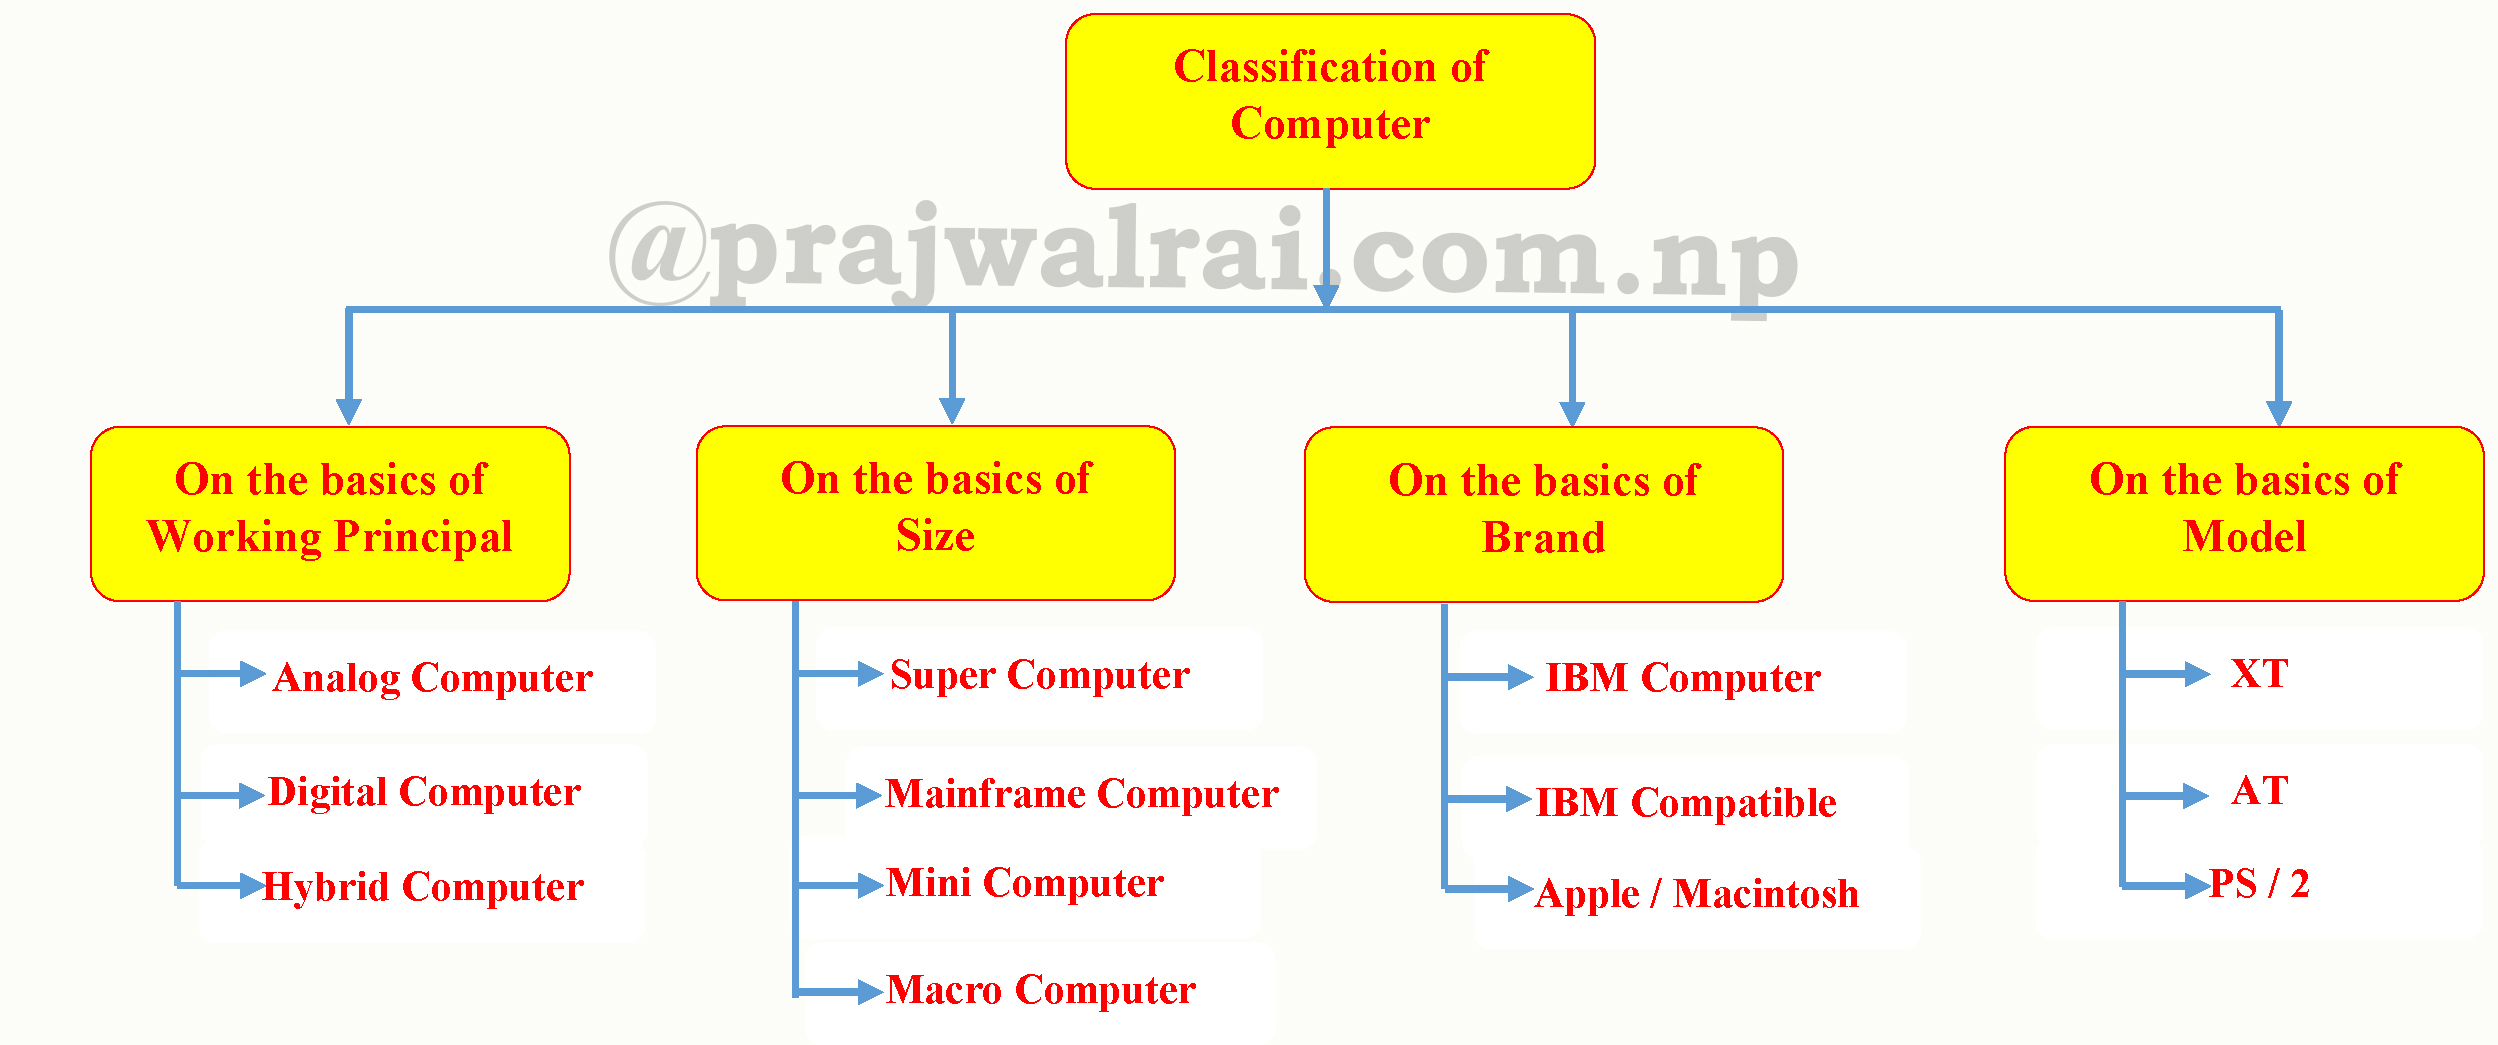 Classification of Computer on the basics of working